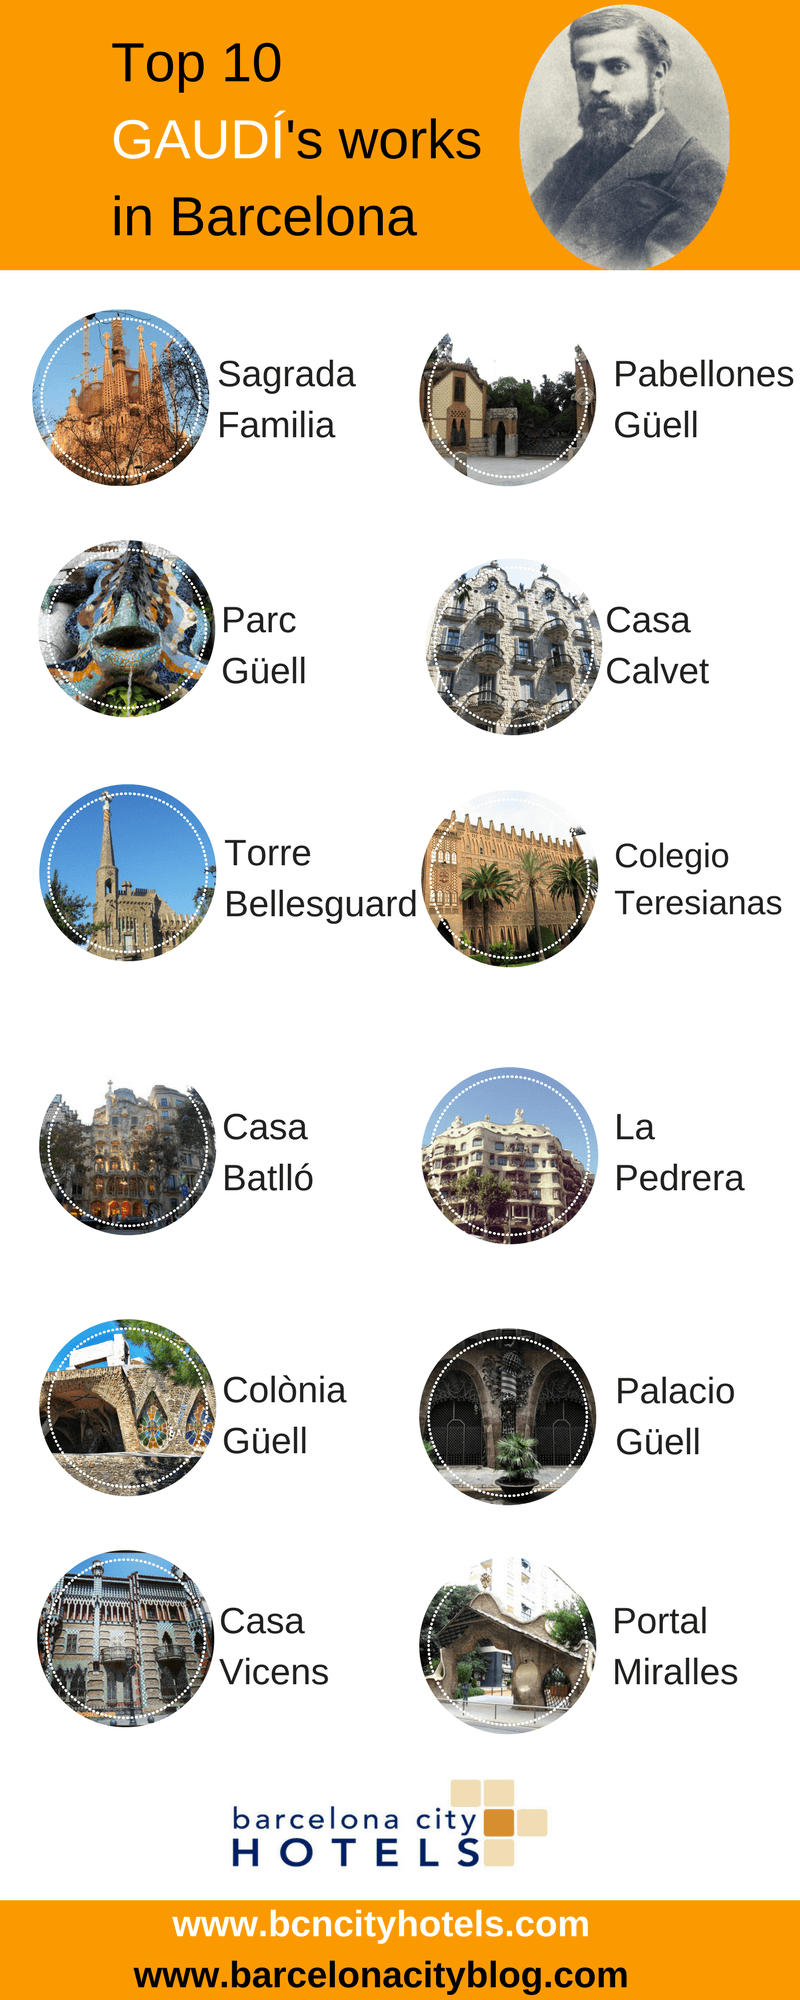 TOP 10 Gaudí's works in Barcelona